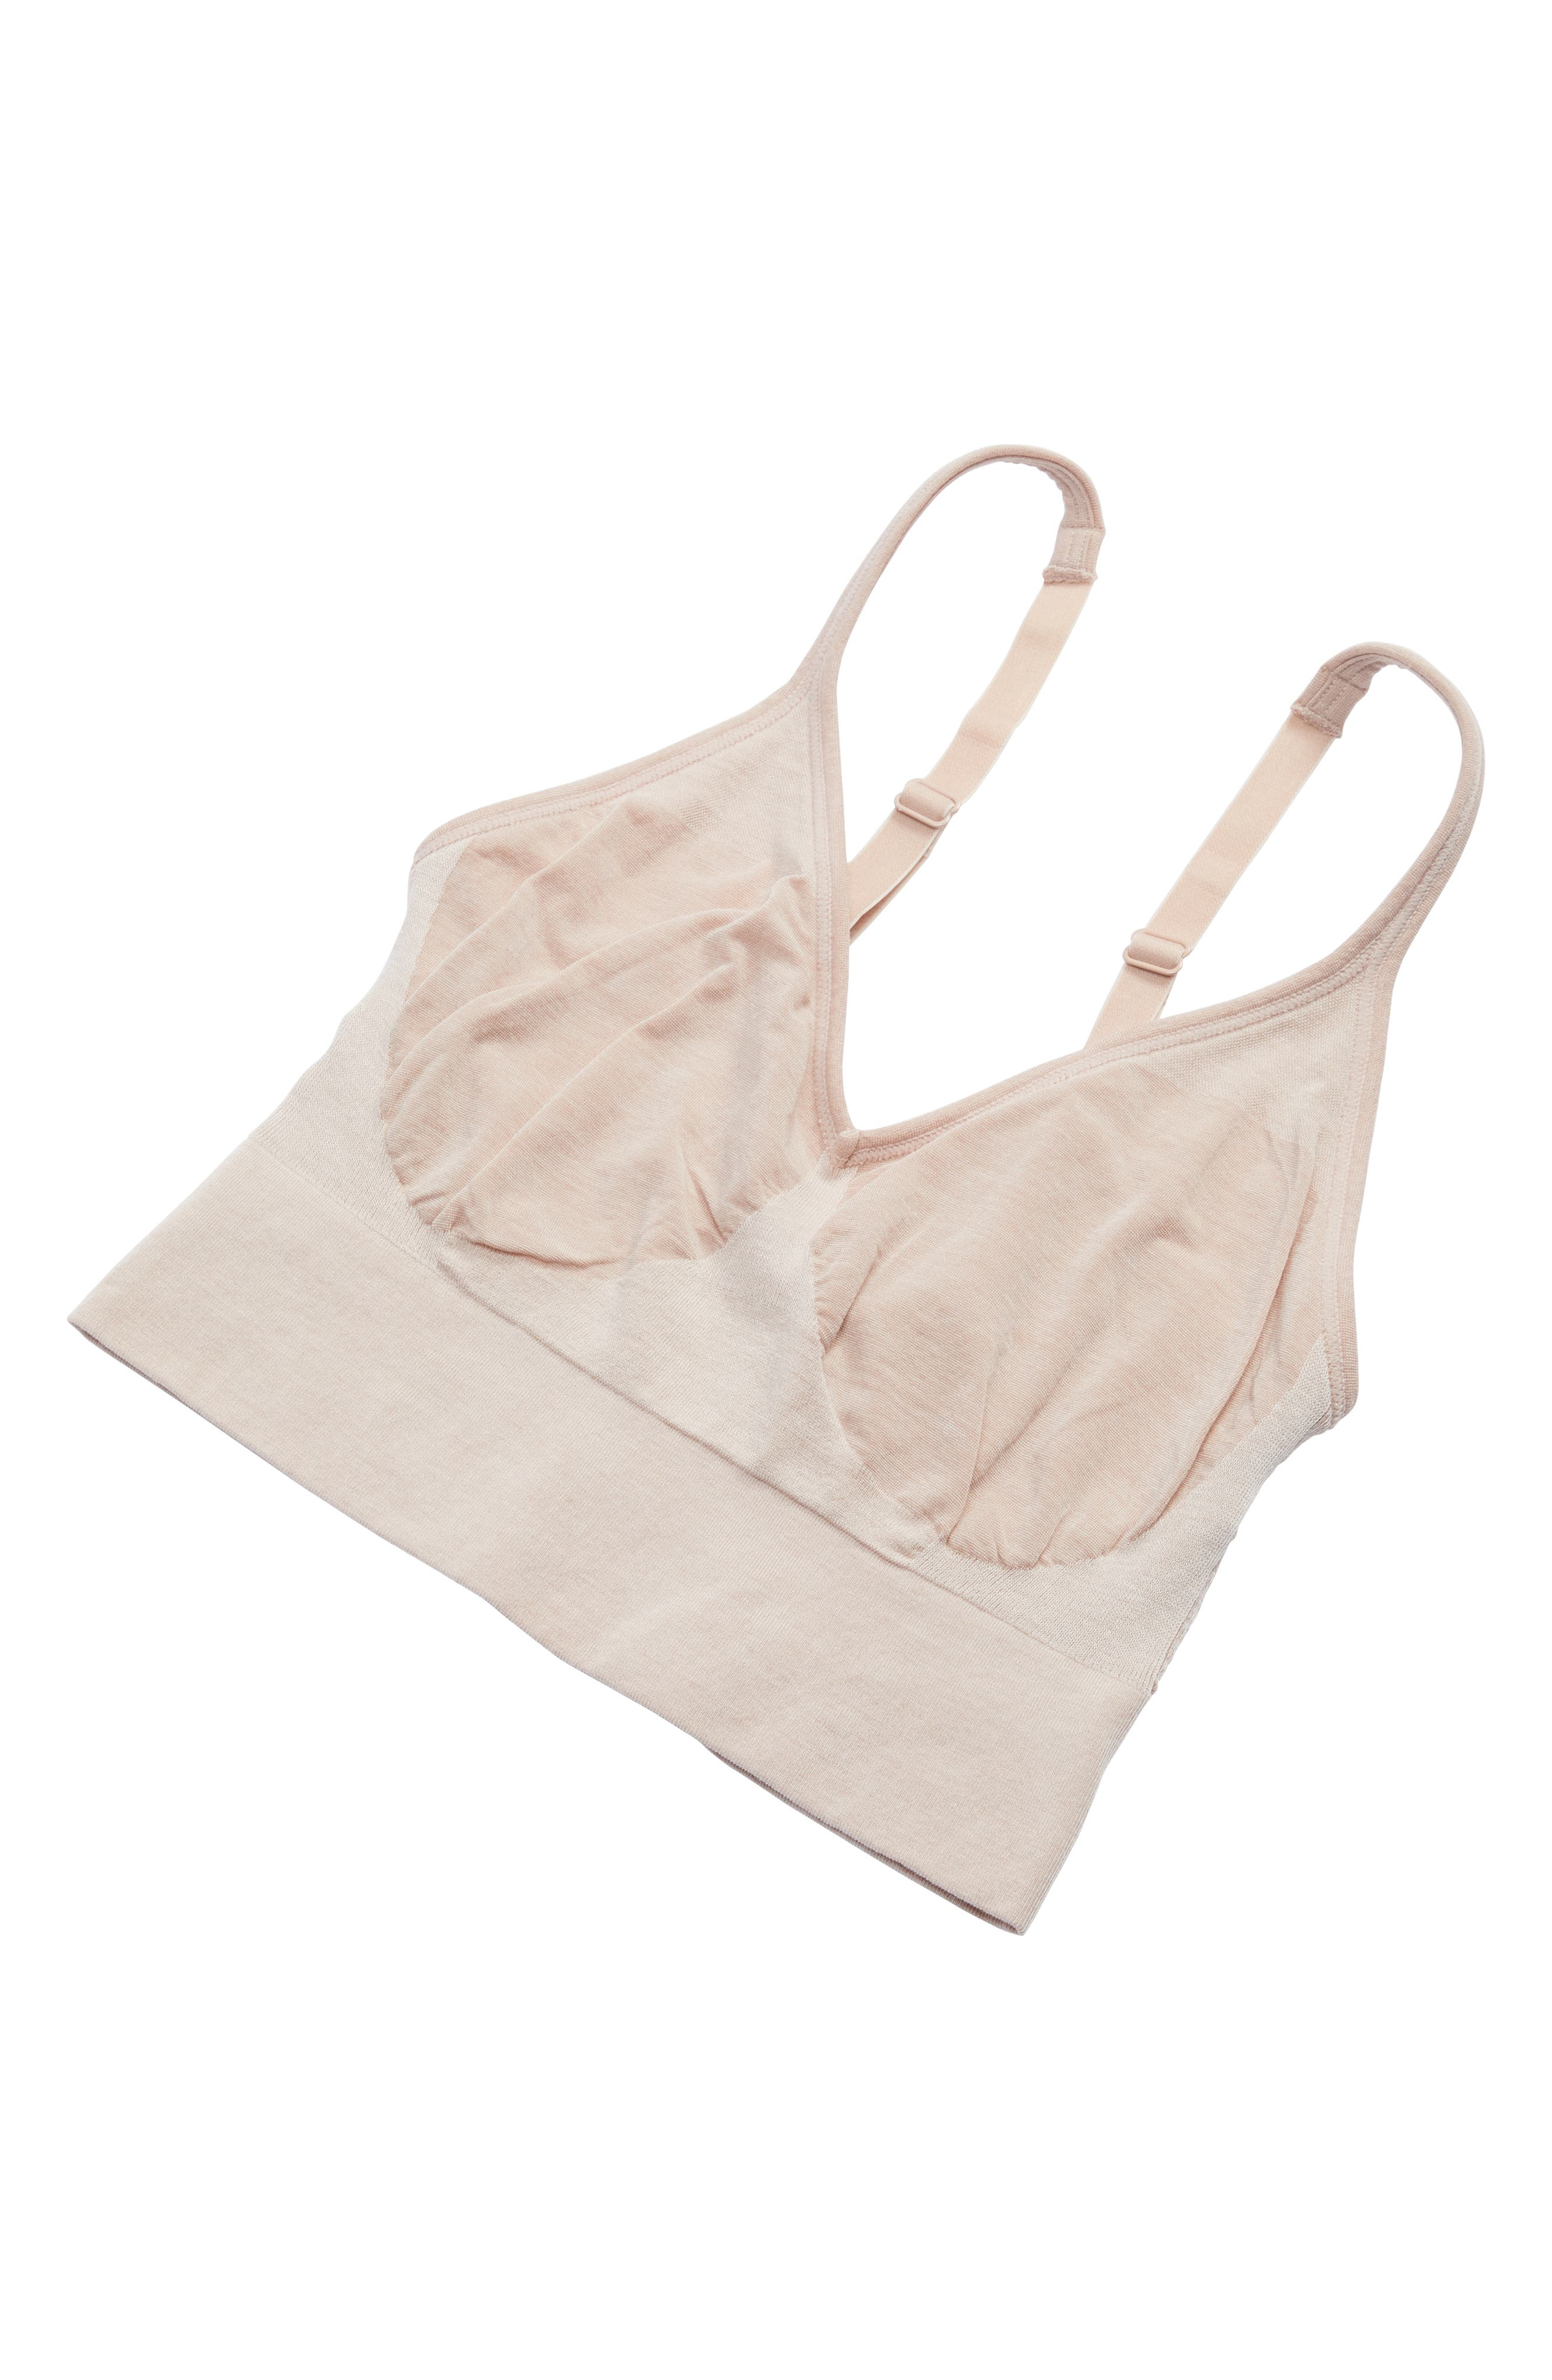 Laidback Layers Seamless Bralette,                             Alternate thumbnail 9, color,                             Pink Cashmere